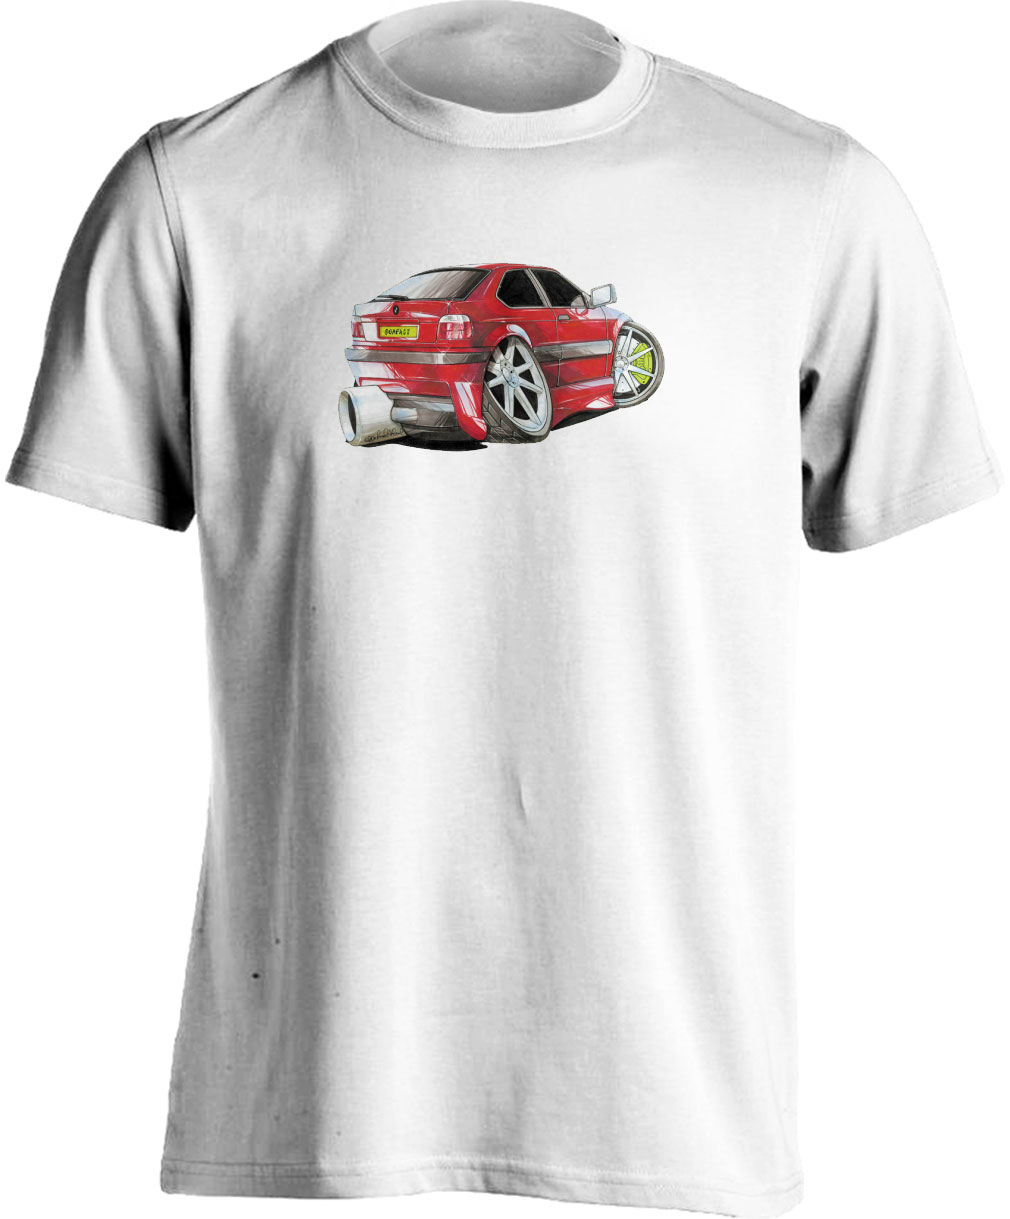 Koolart BMW Compact Red -1200- Adults Unisex T Shirt